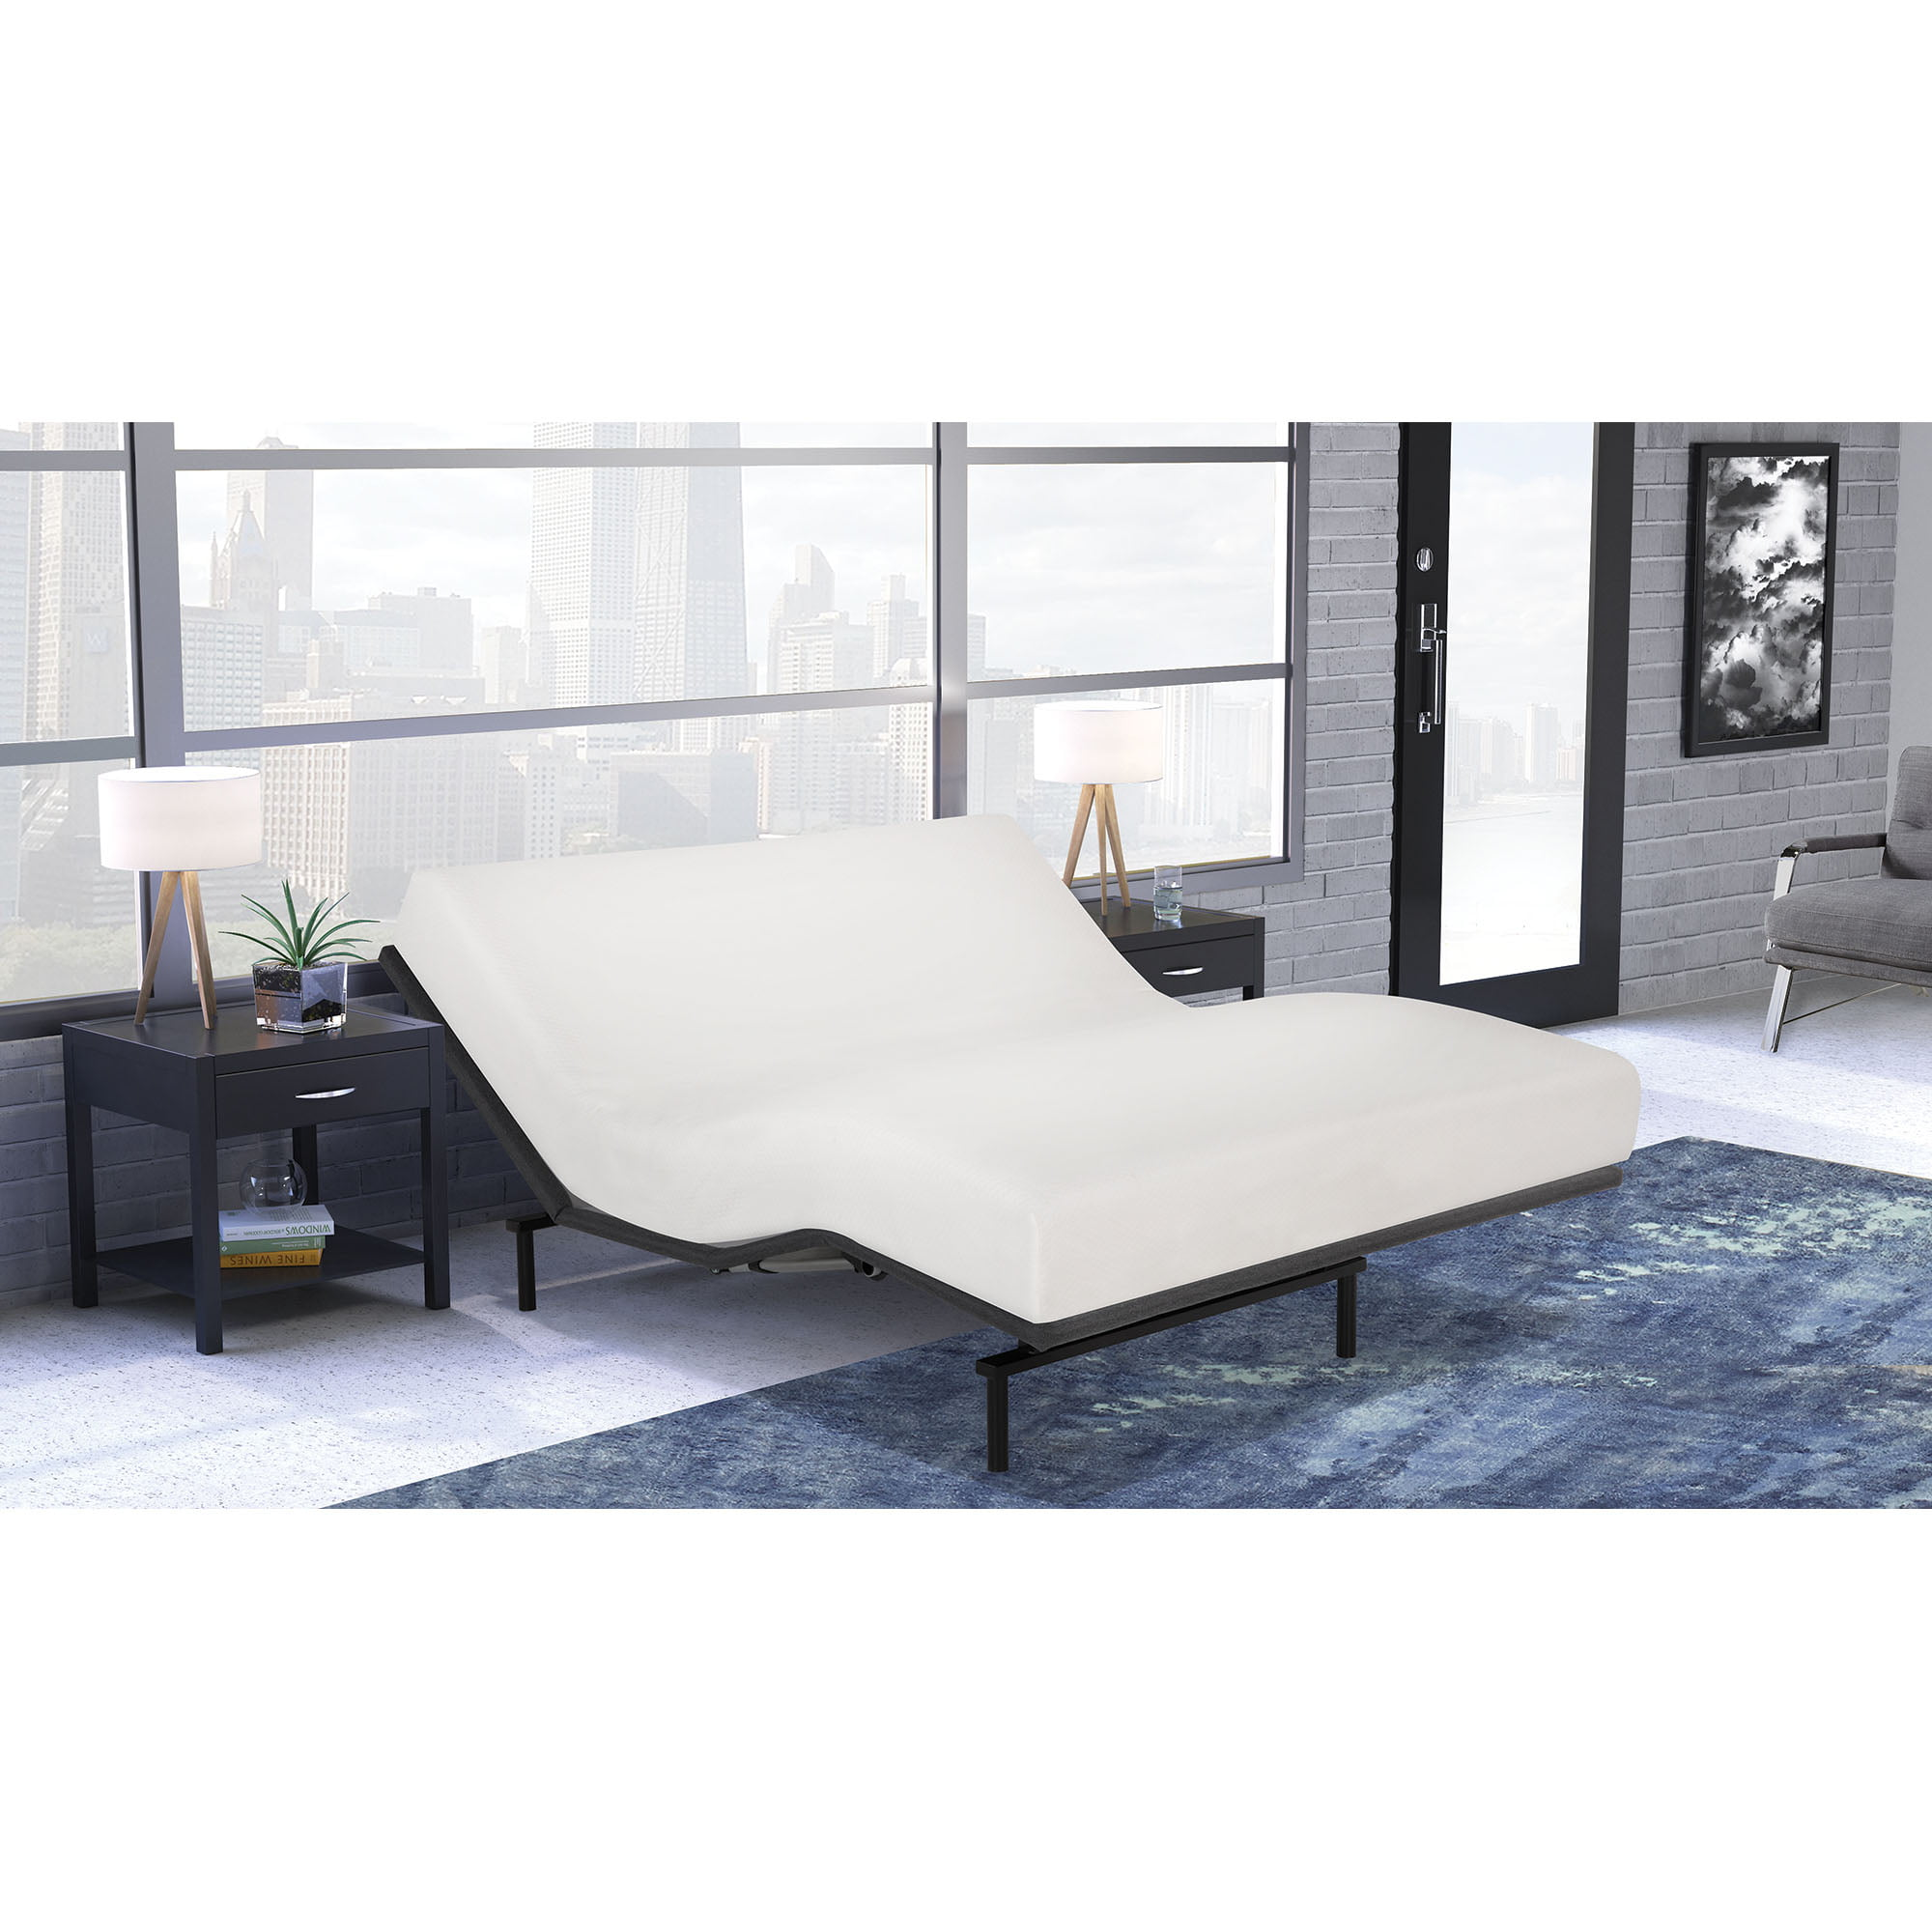 adjustable dp leggett platt com bed amazon split base and view frames signature larger